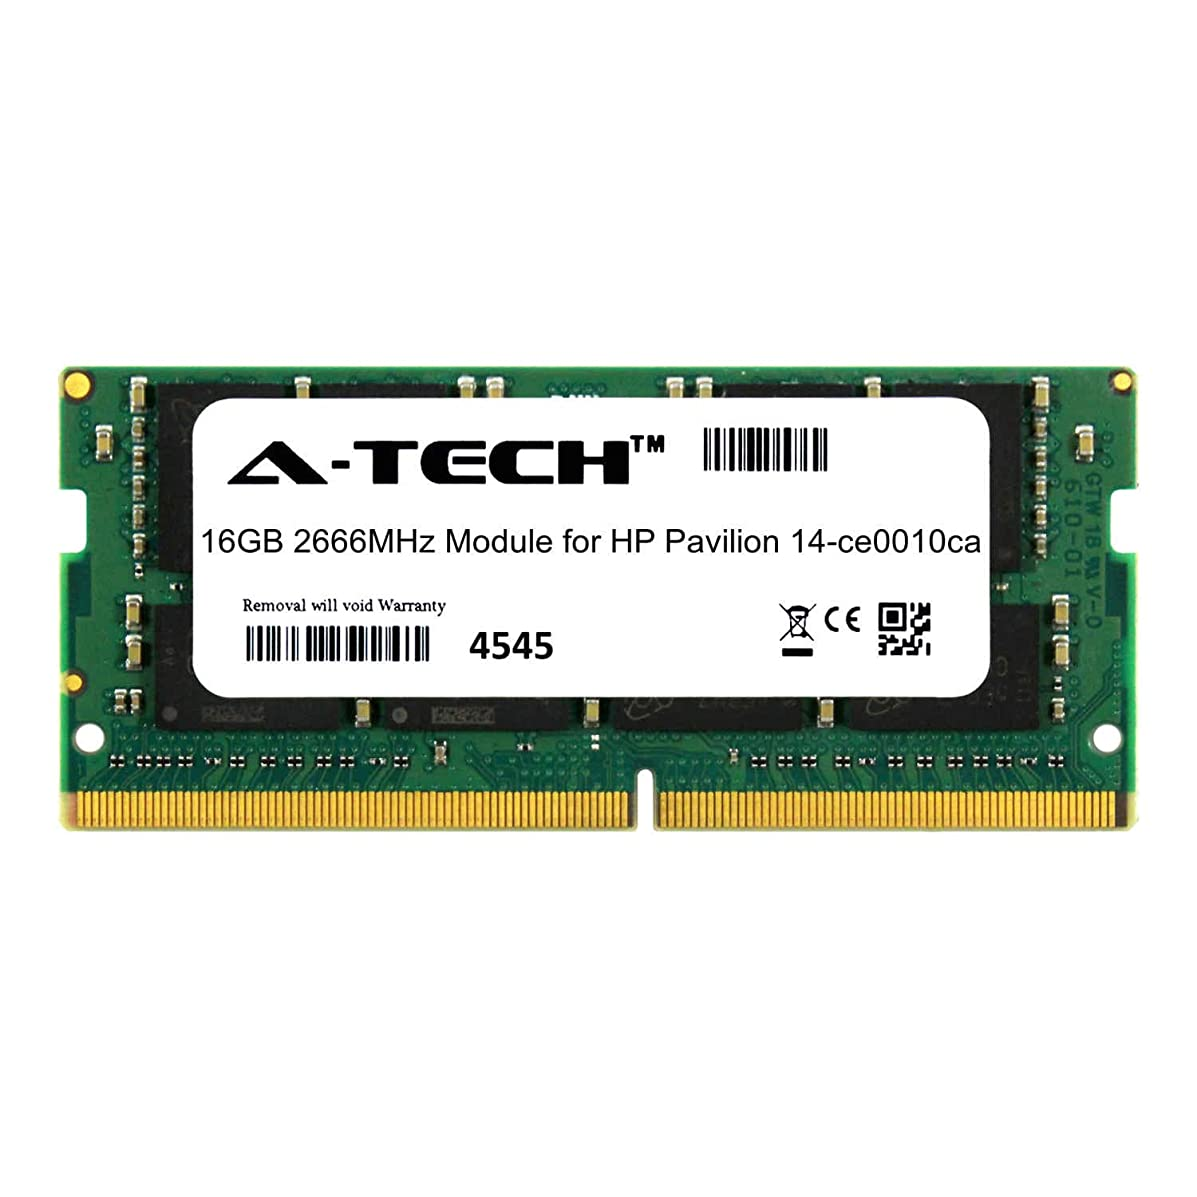 A-Tech 16GB Module for HP Pavilion 14-ce0010ca Laptop & Notebook Compatible DDR4 2666Mhz Memory Ram (ATMS307916A25832X1)